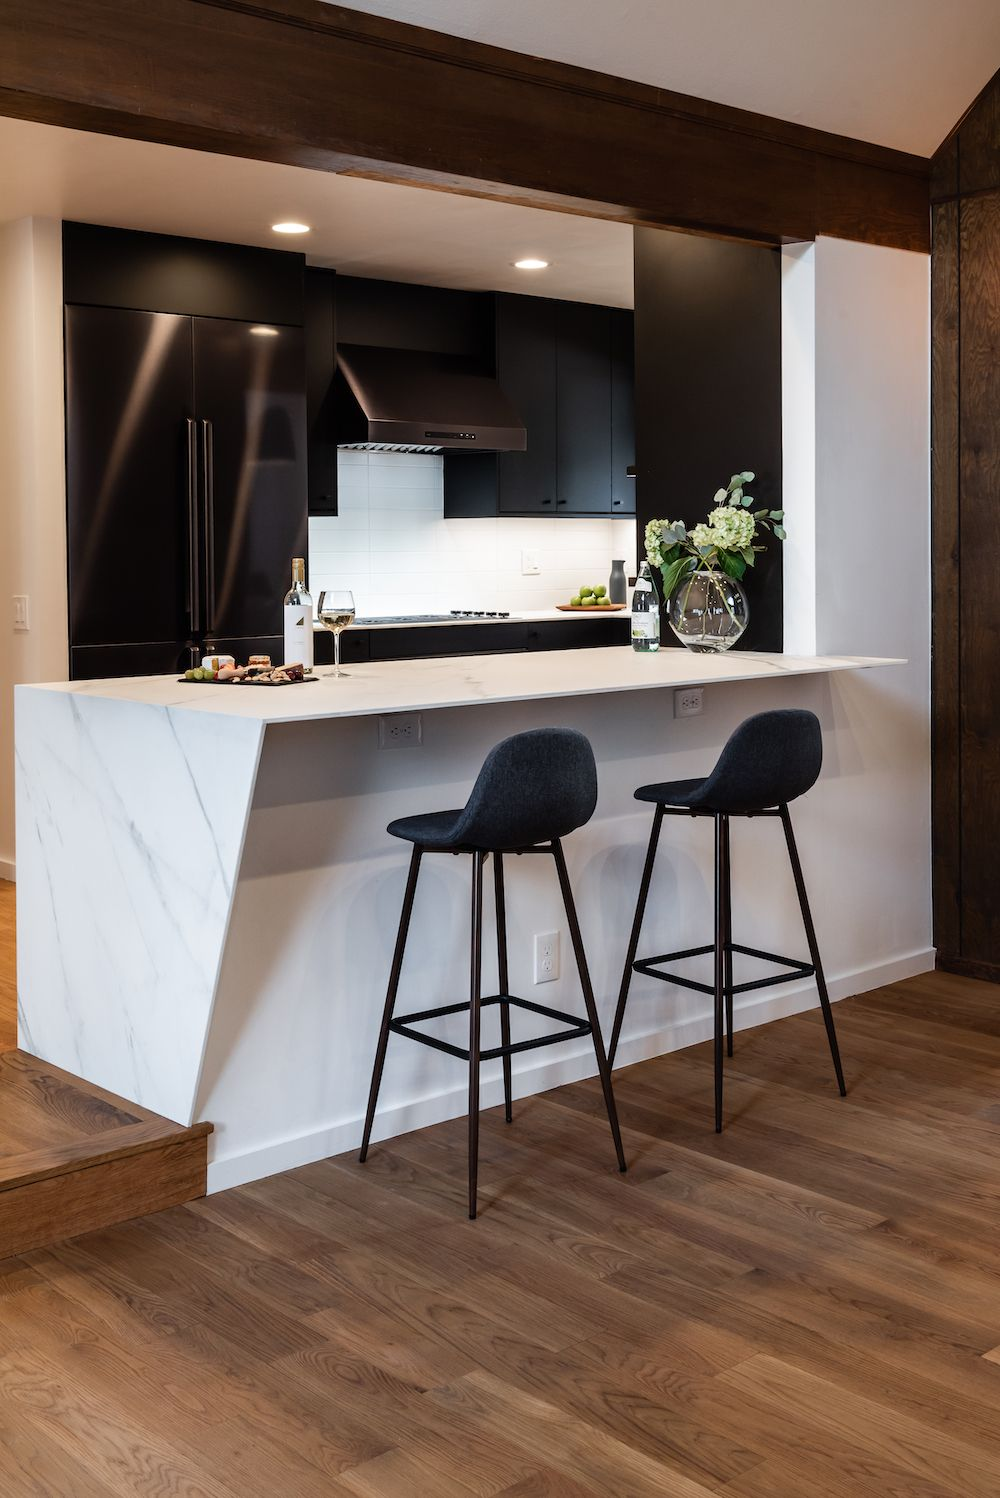 Pin On Coverings Top Ten Tile Trends For 2020